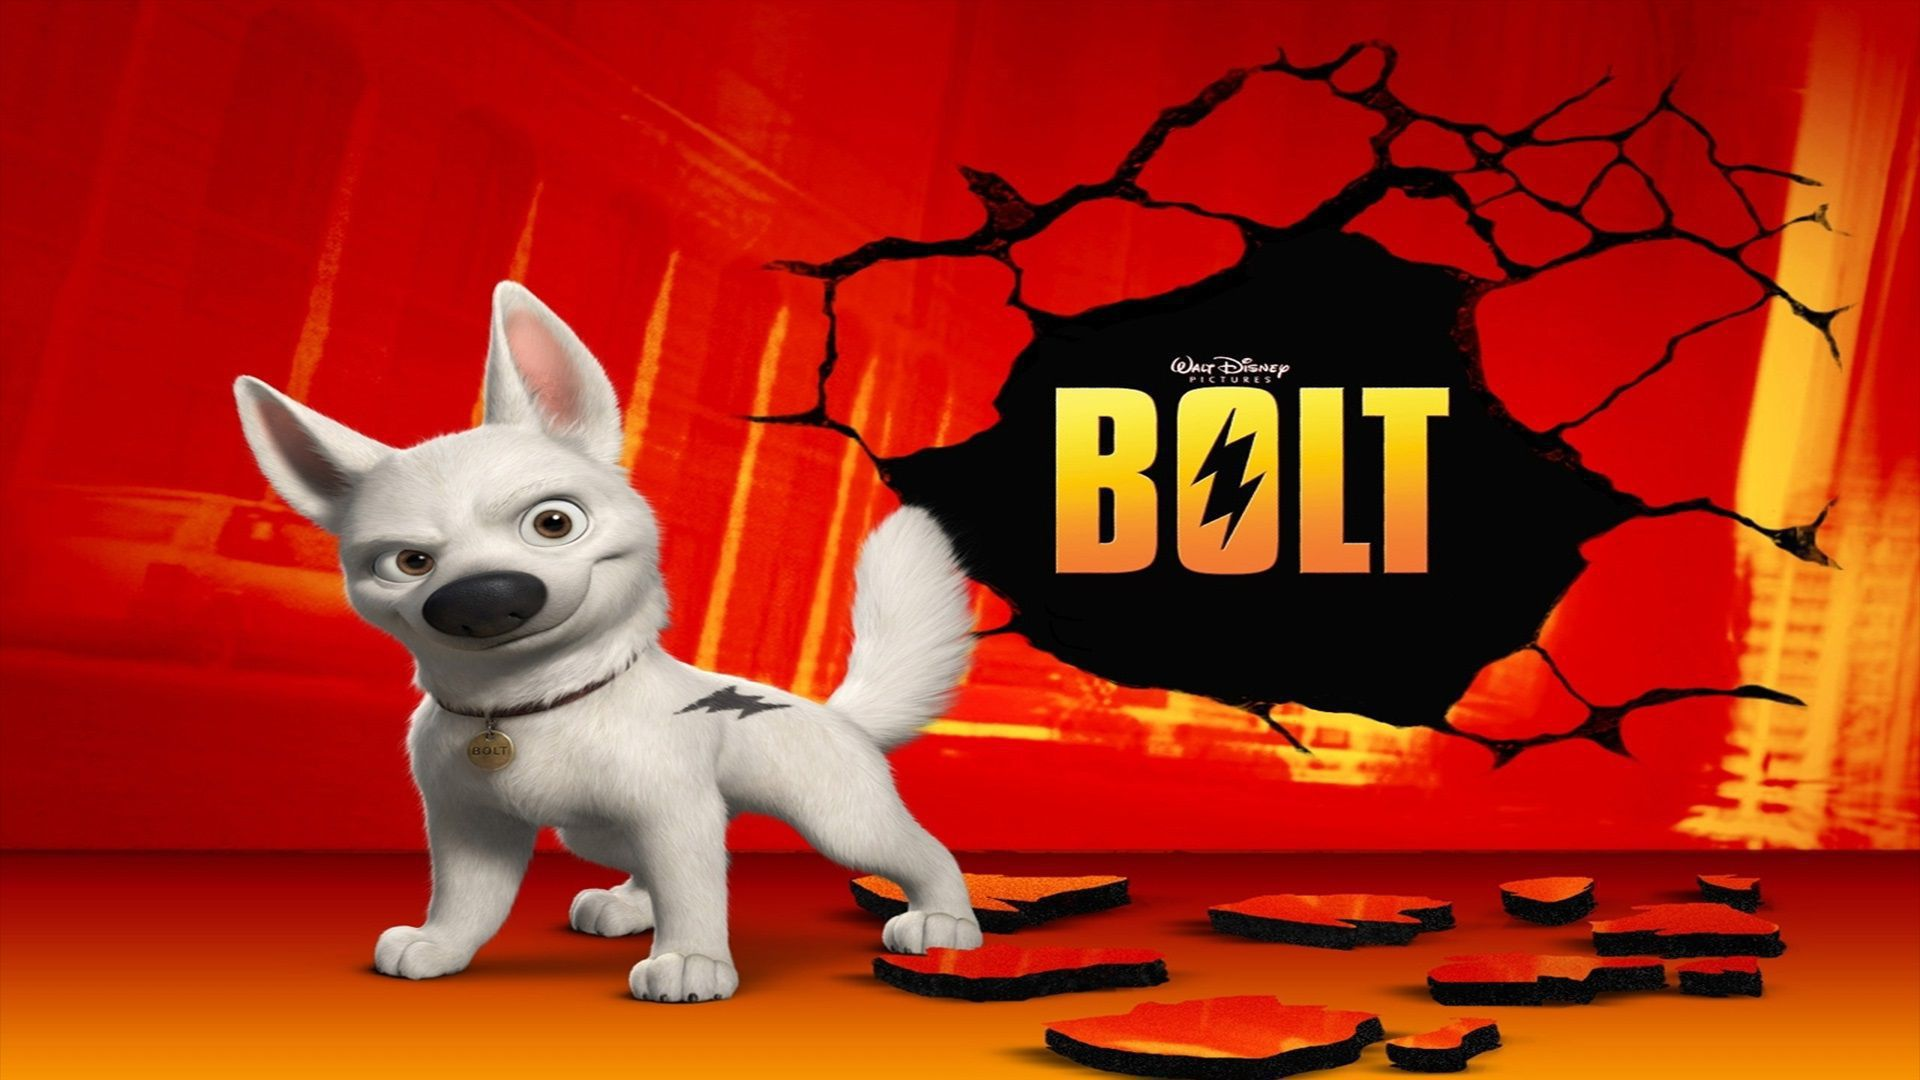 Bolt Wallpaper Pack